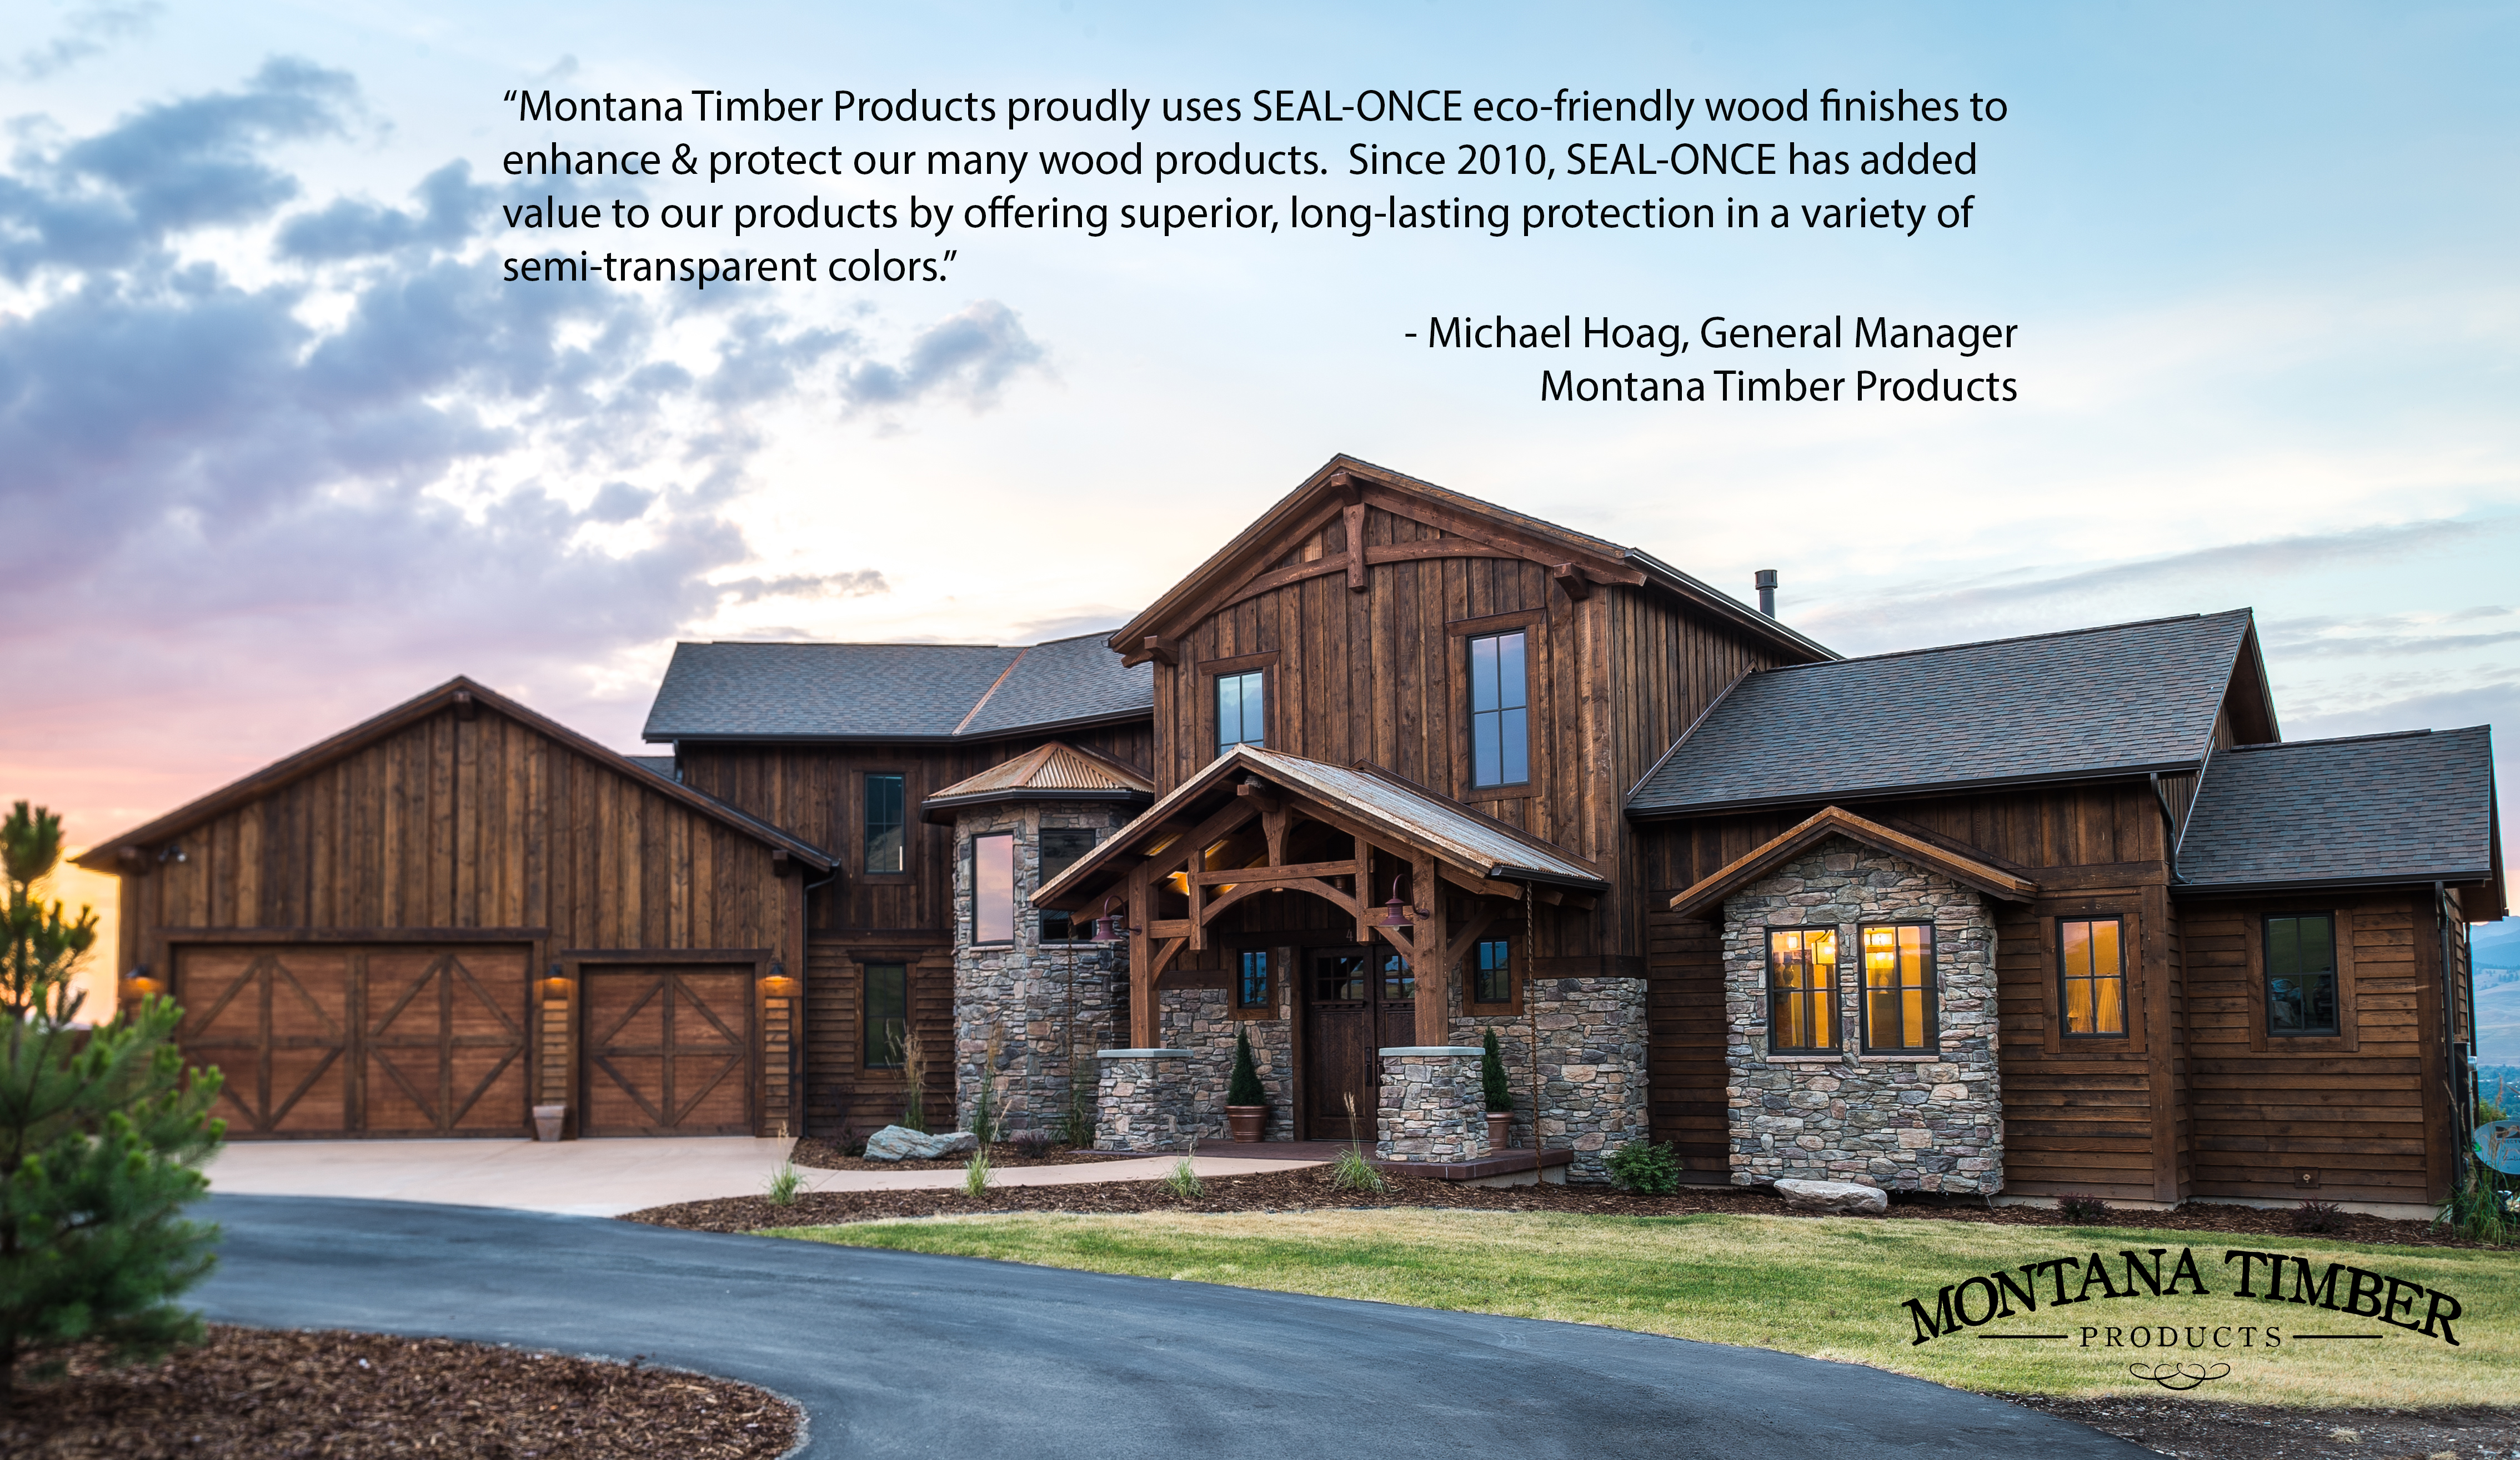 Montana Timber Products proudly uses SEAL-ONCE eco-friendly wood finishes to enhance & protect our many wood products. Since 2010, SEAL-ONCE has added value to our products by offering superior, long-lasting protection in a variety of semi-transparent colors. - Michael Hoag, General Manager Montana Timber Products